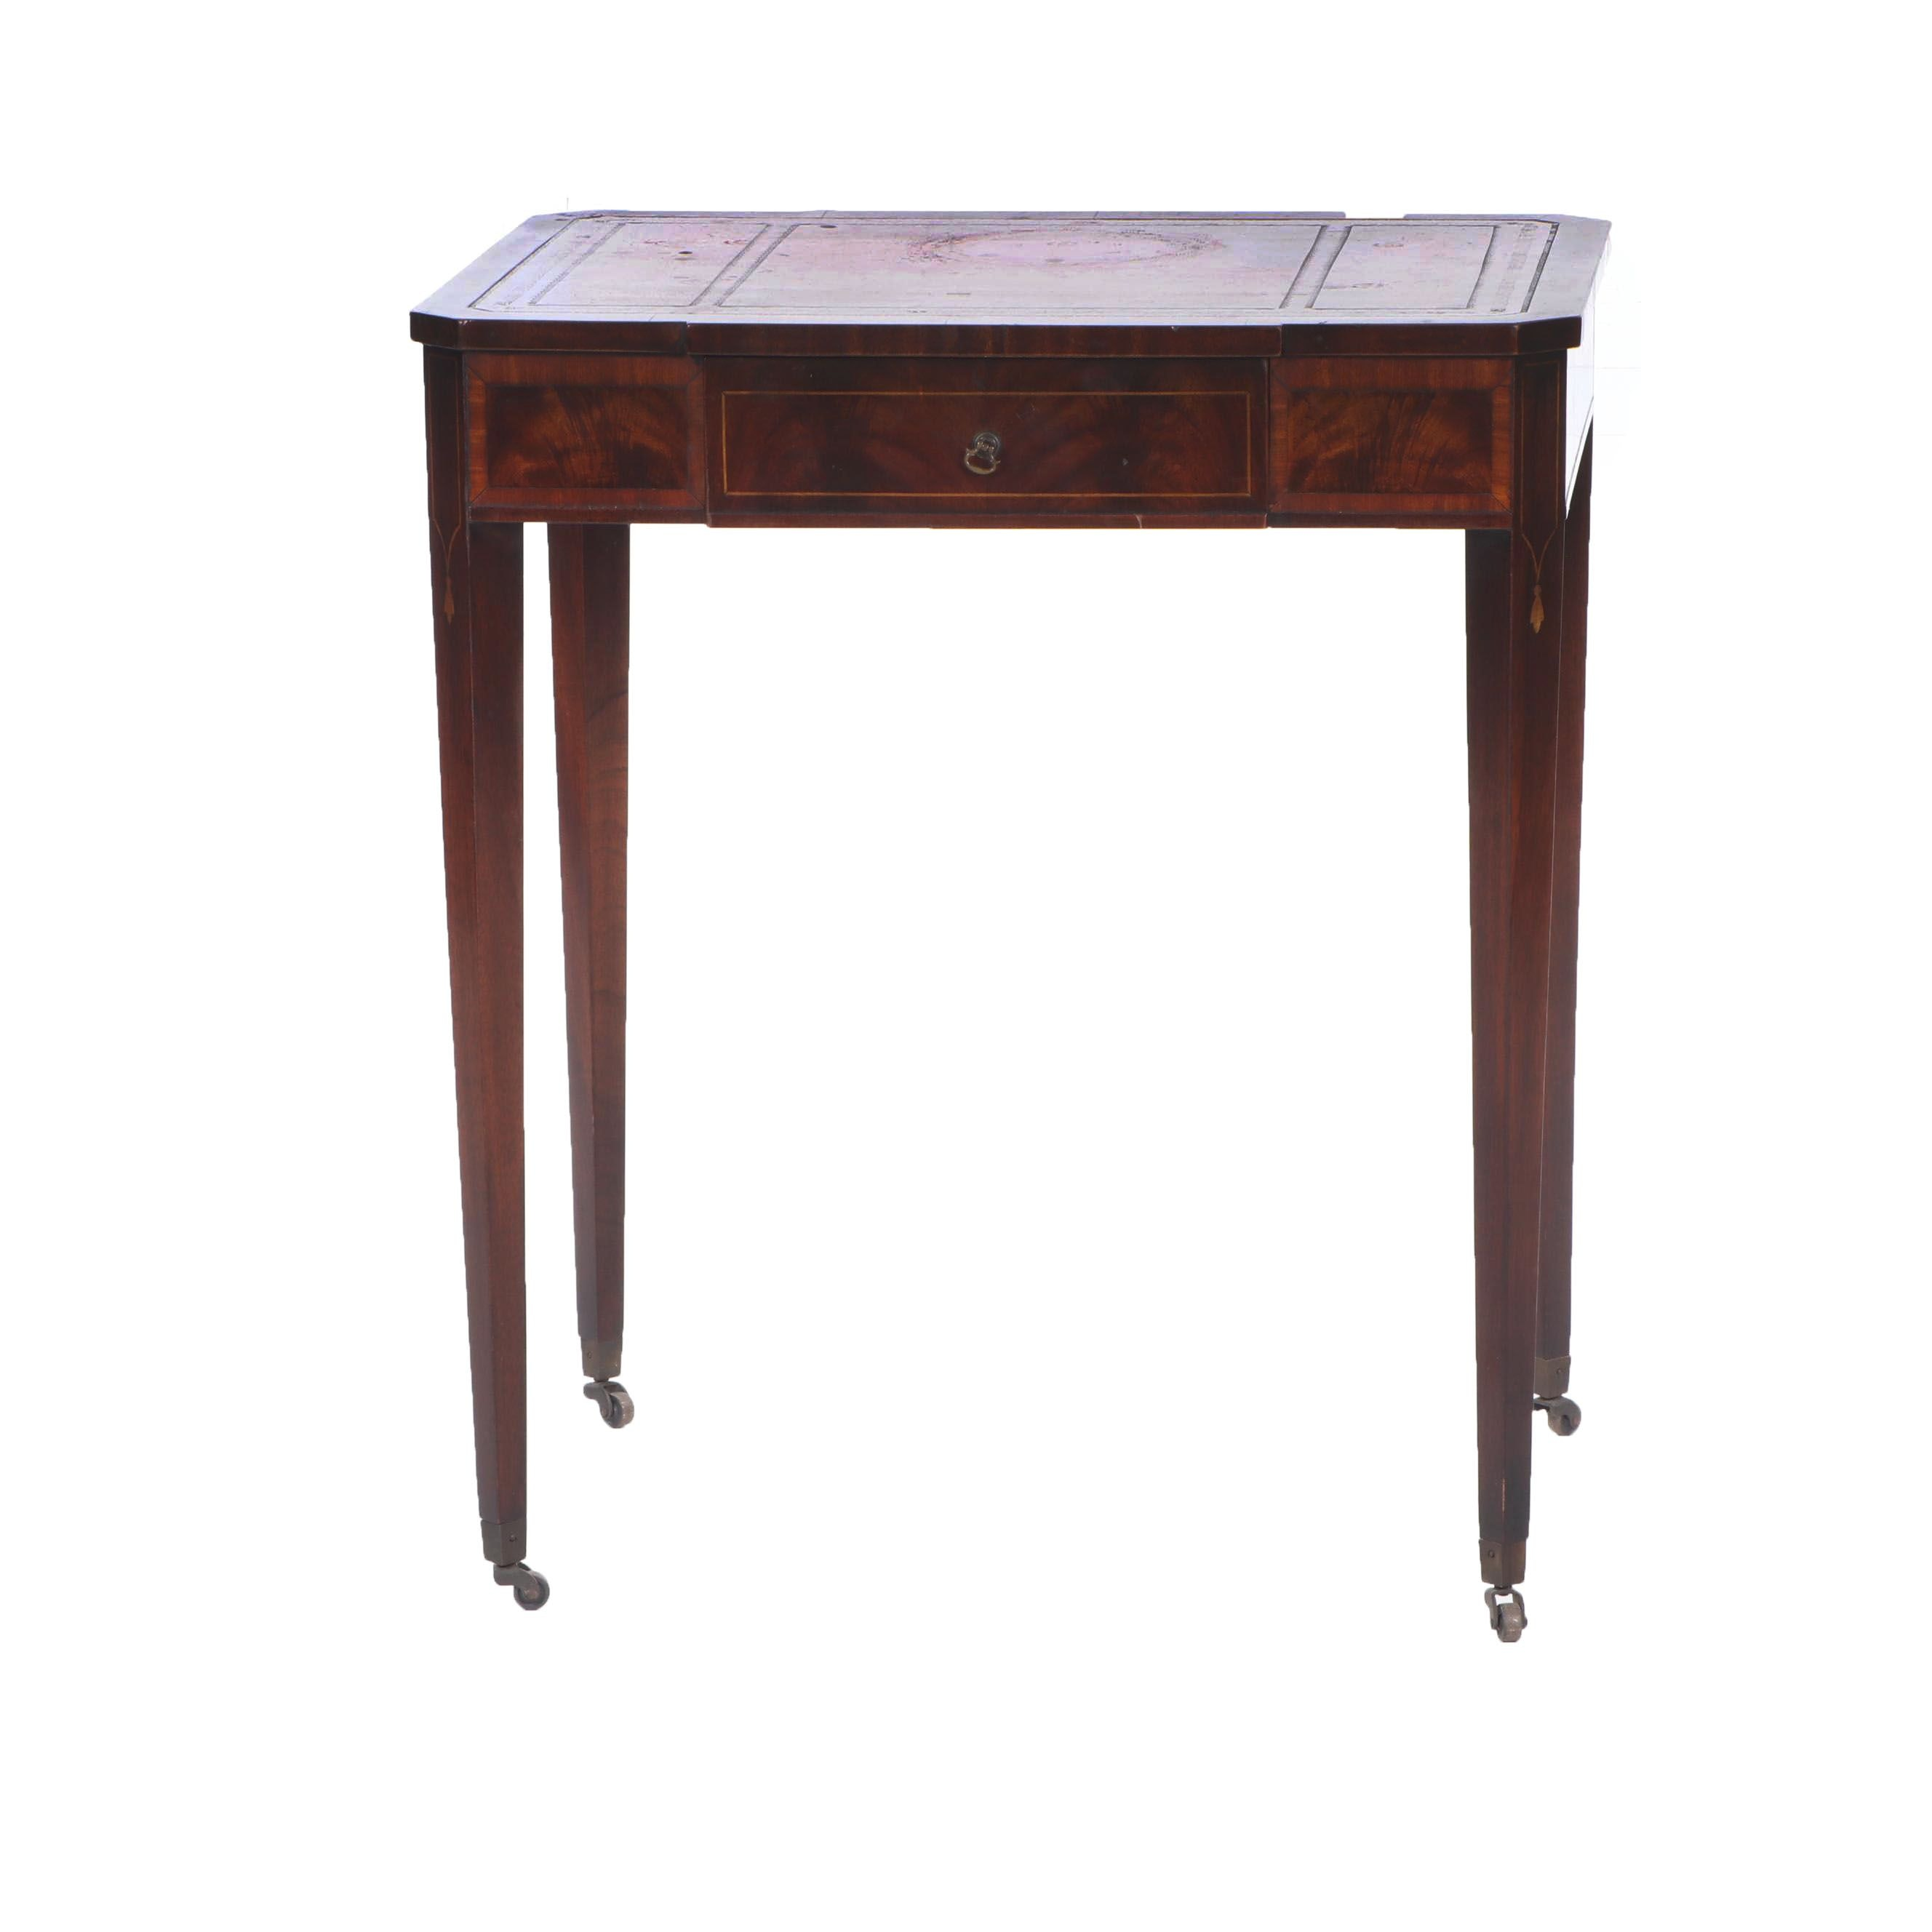 G. Fox & Co. Federal Style Mahogany and Leather Inset Writing Table